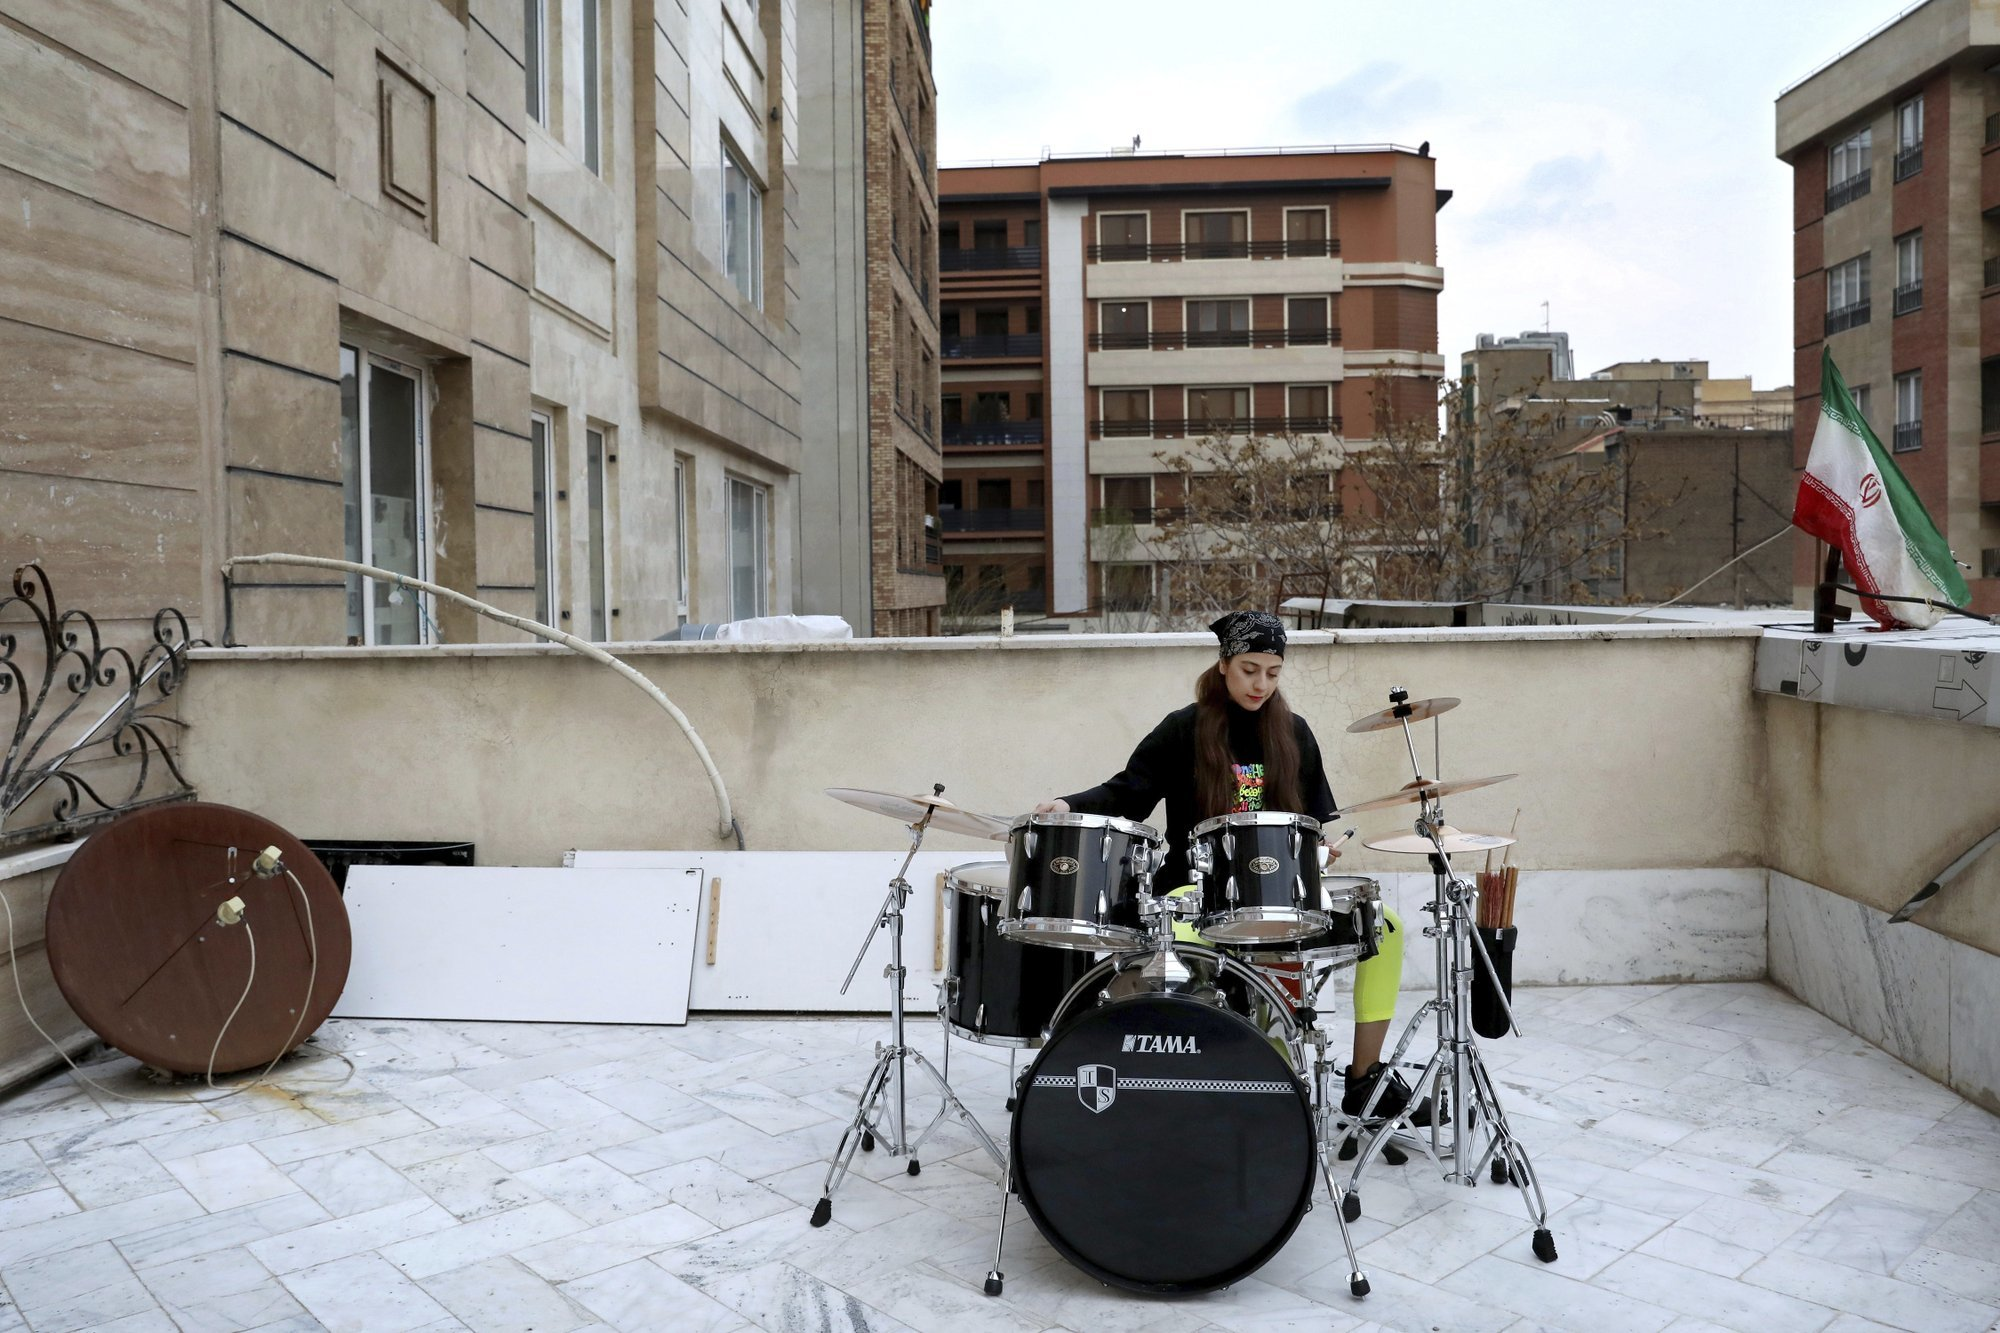 Farideh Sarsangi, 28, plays drums on the roof of her home during mandatory self-isolation due to the new coronavirus disease outbreak, in Tehran Iran. (AP Photo/Ebrahim Noroozi)